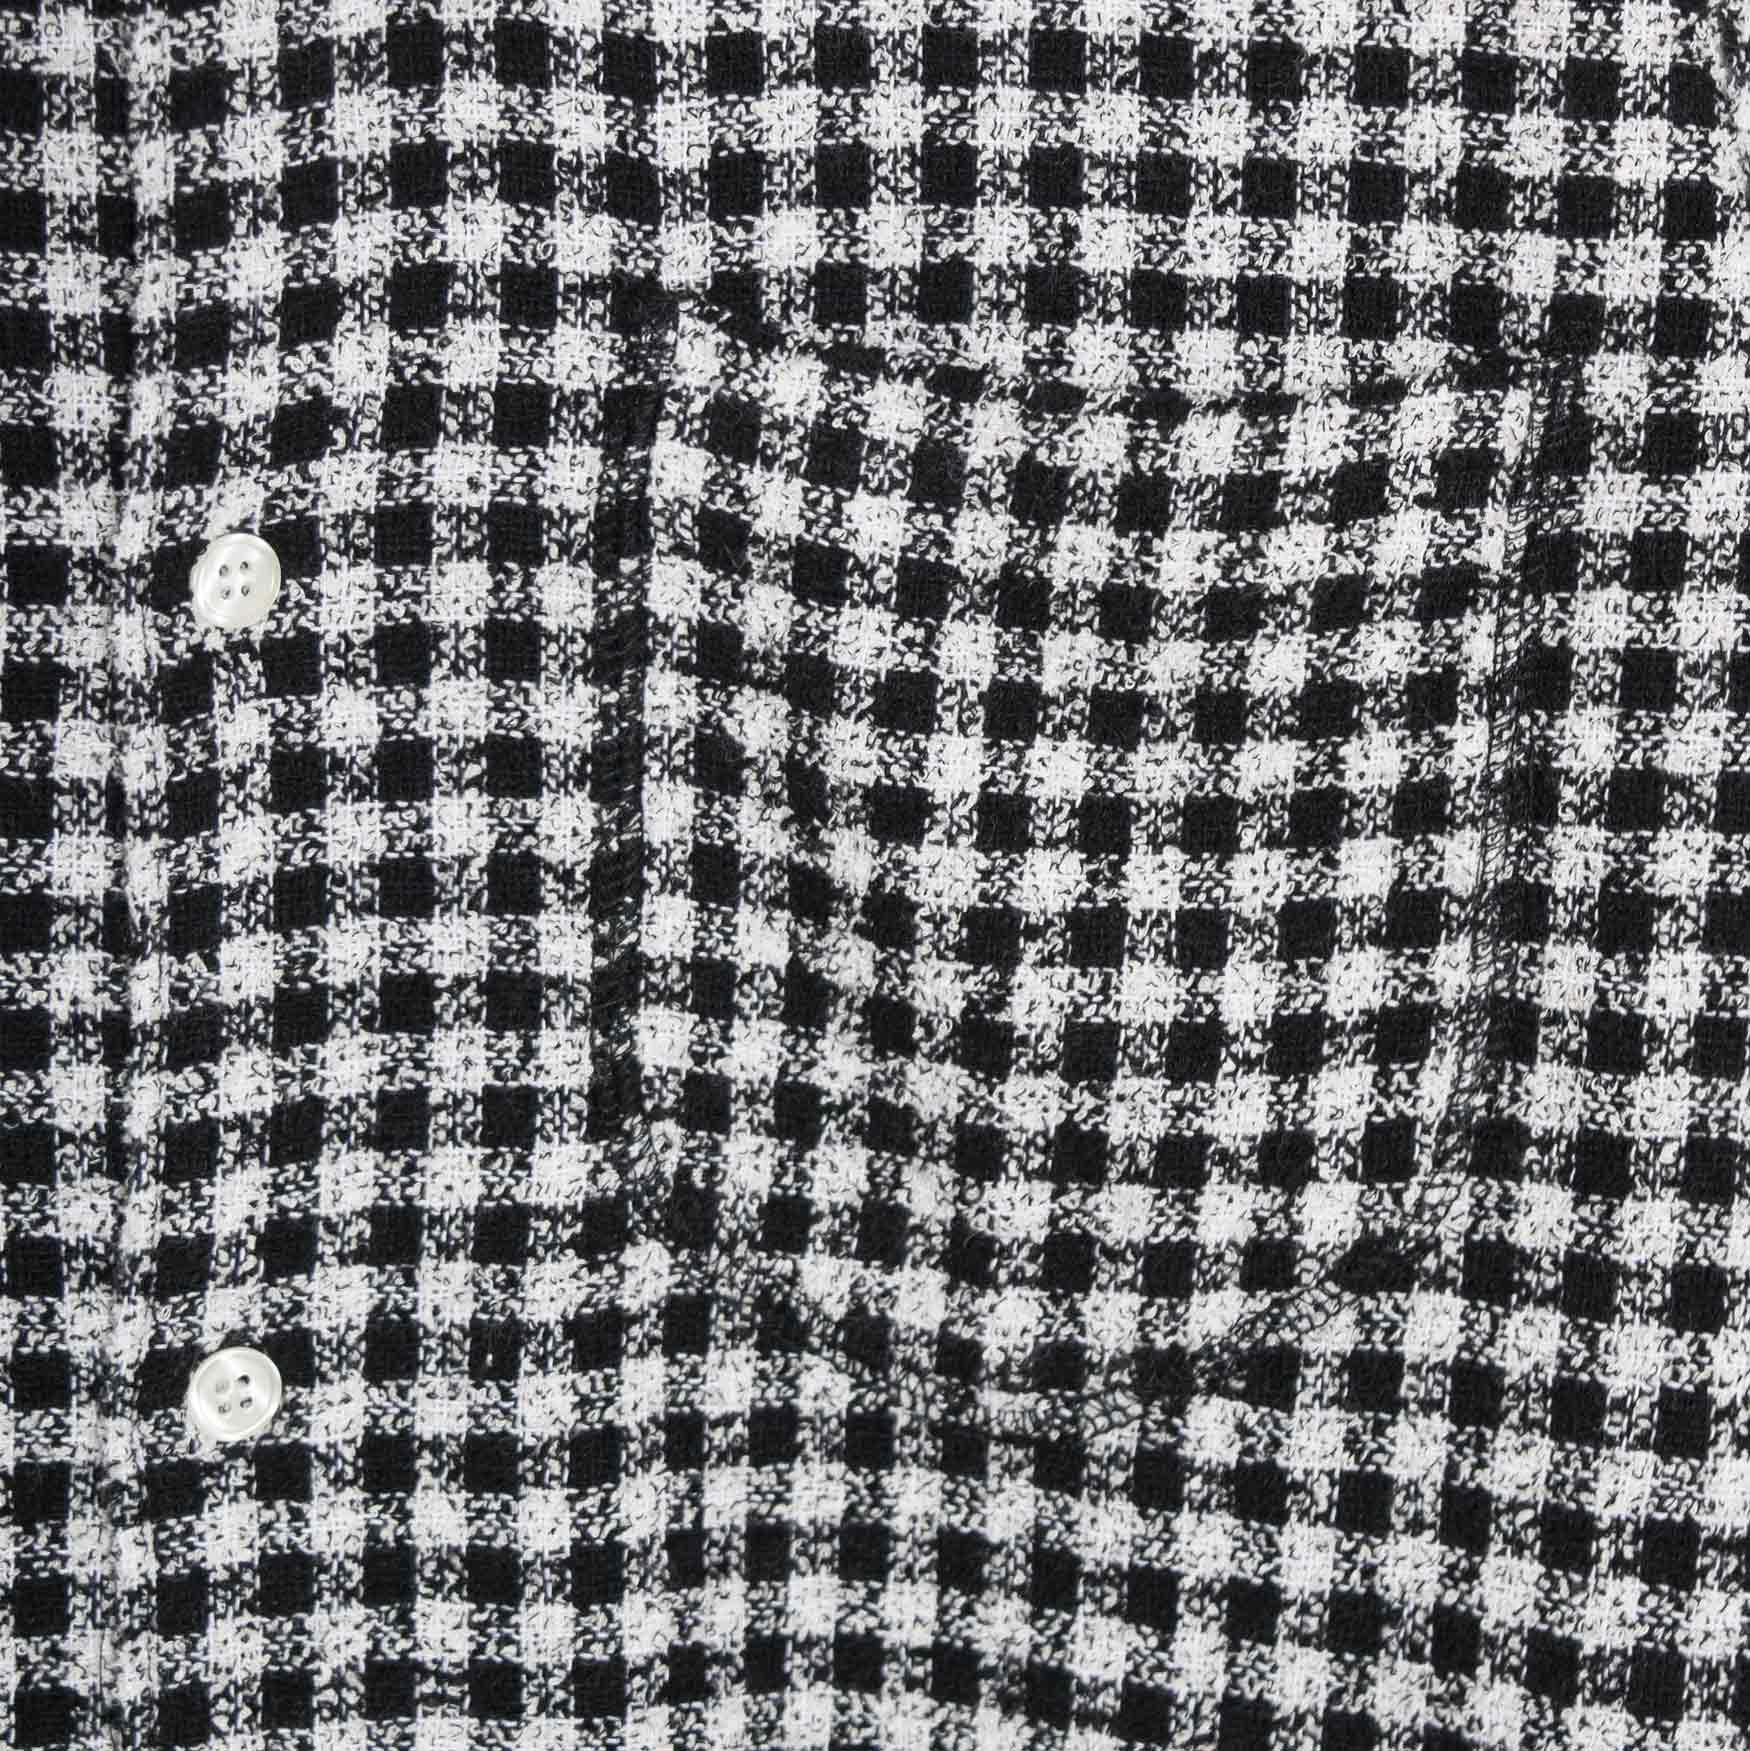 Soulland Green Checked Textured Shirt - Black/White